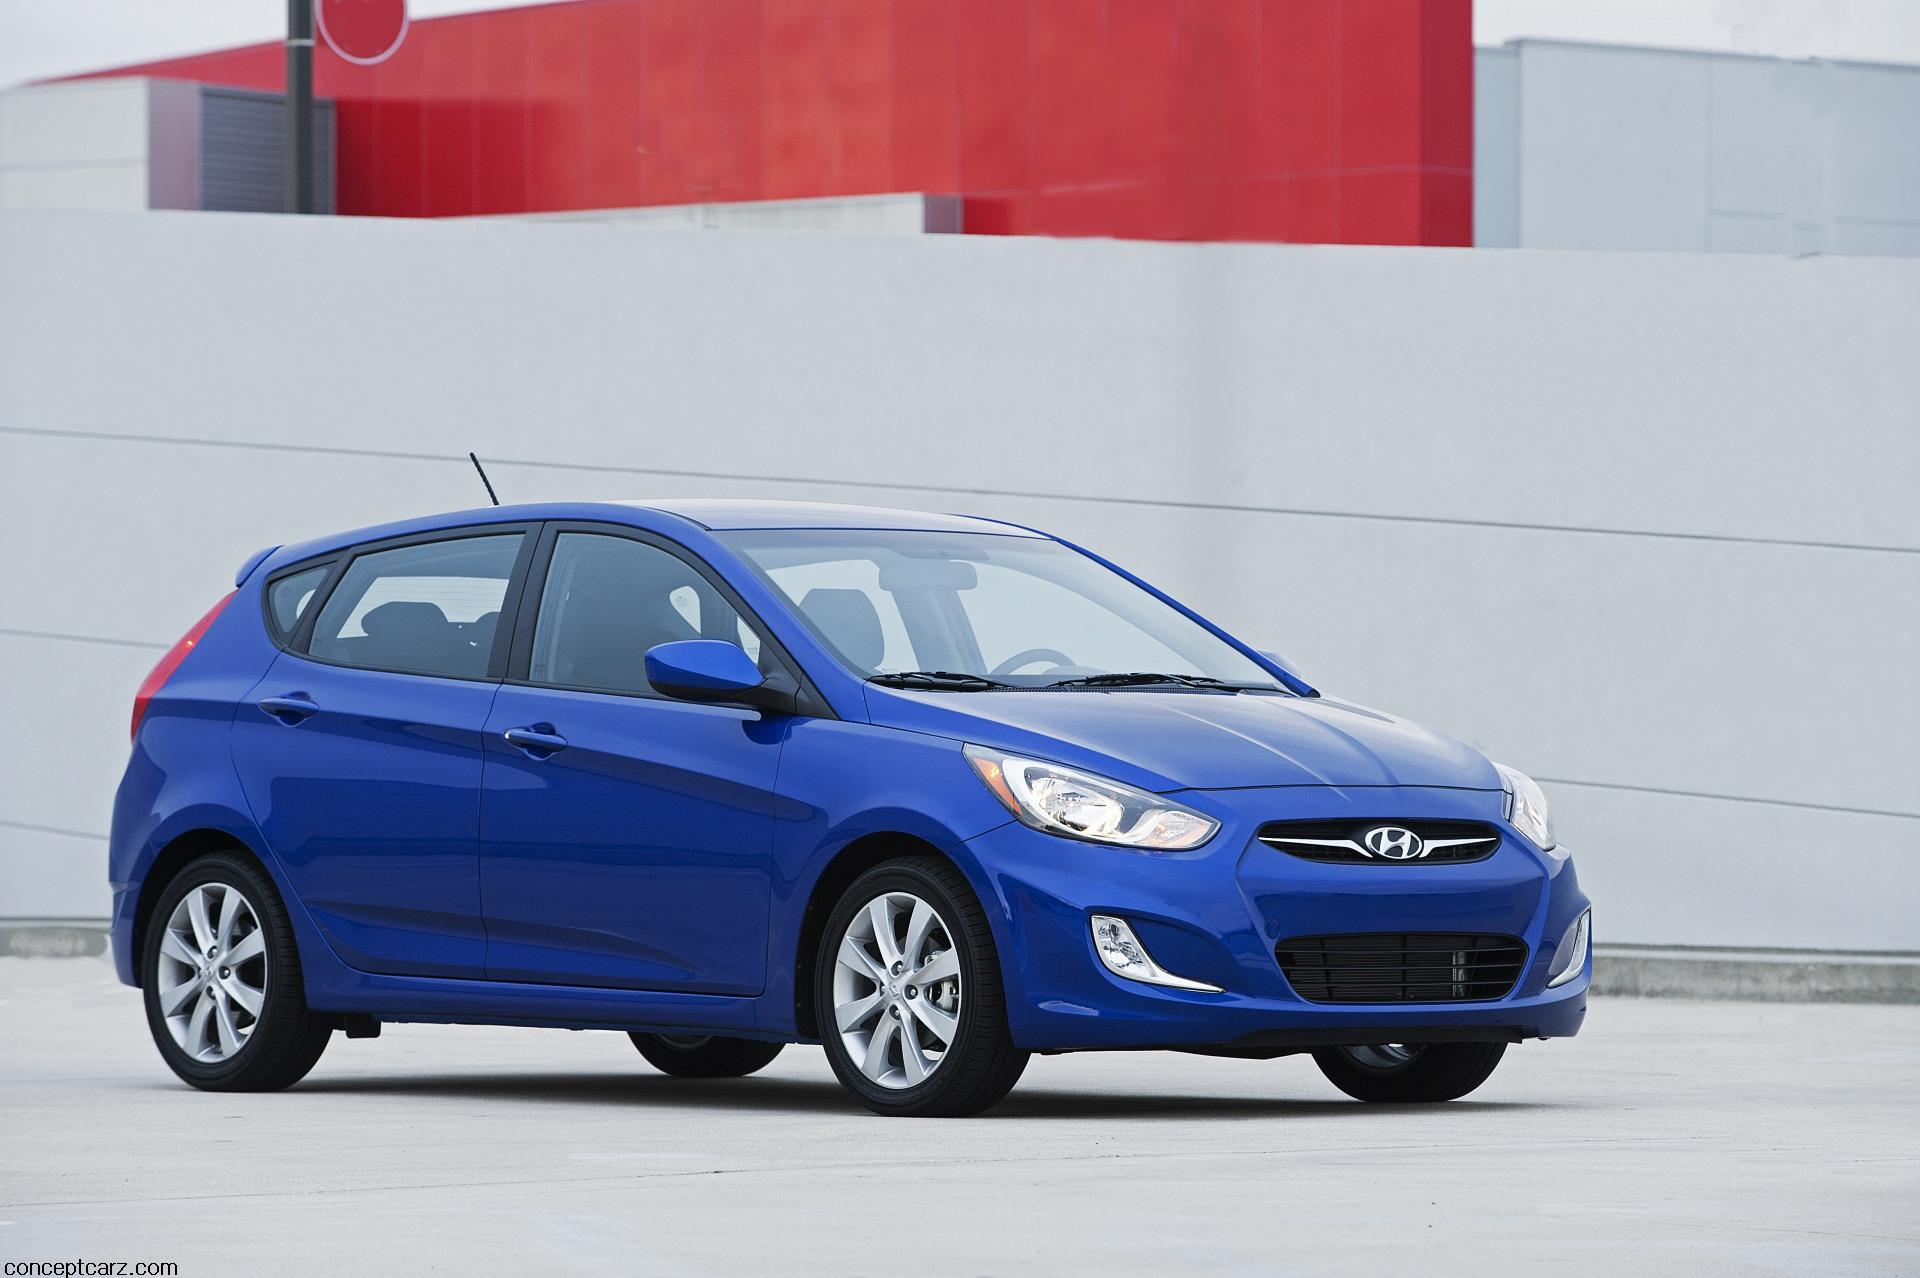 2012 Hyundai Accent News and Information